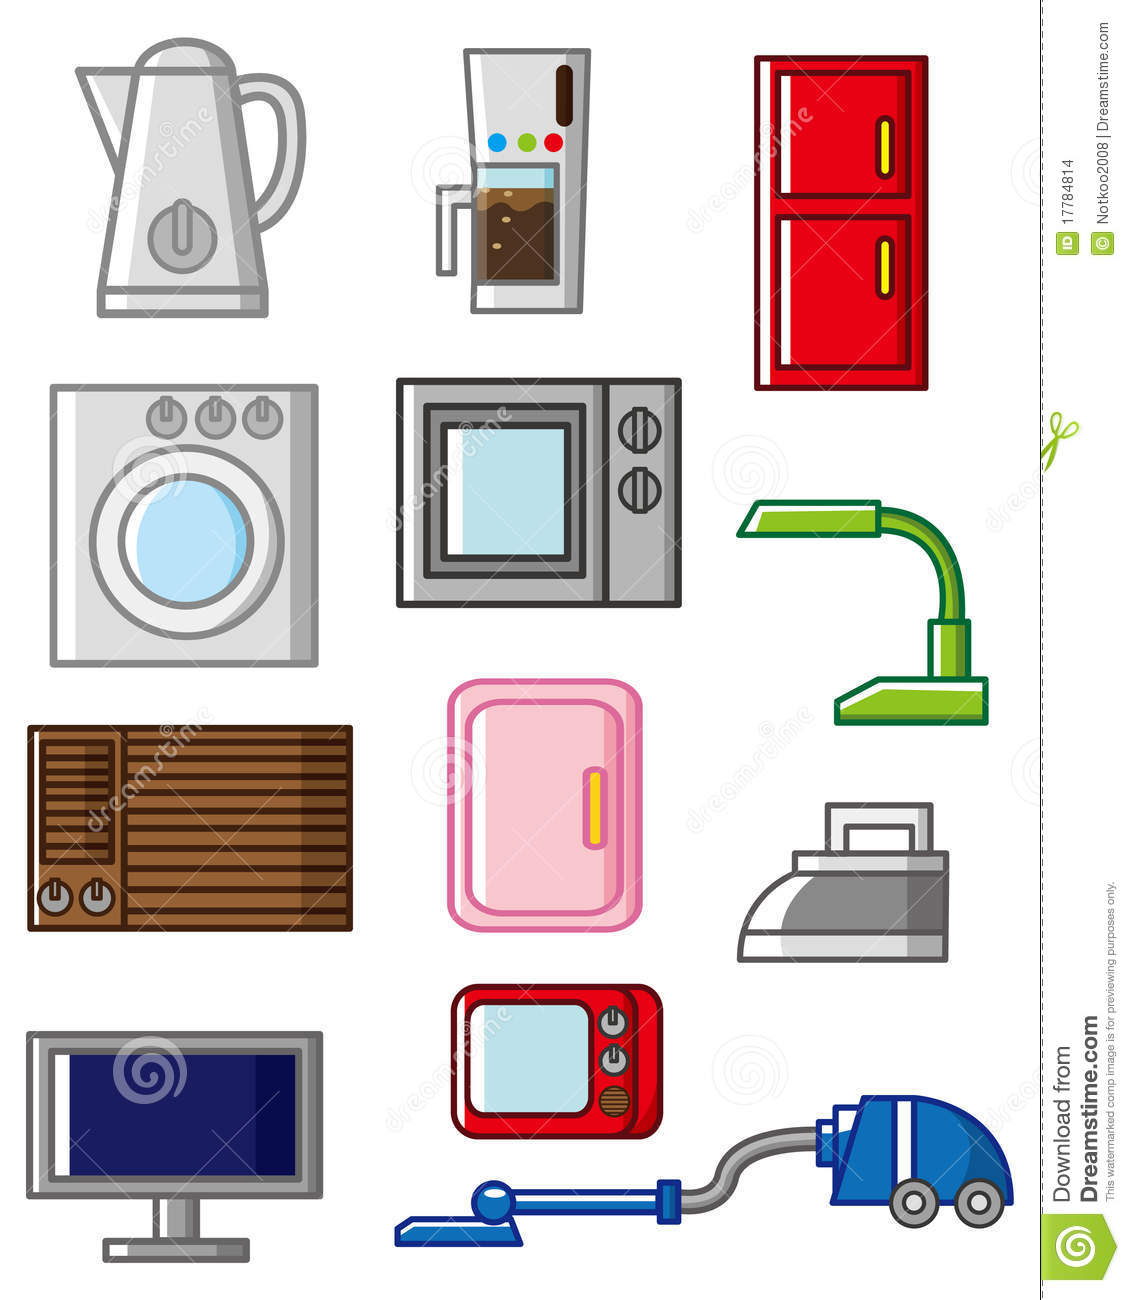 cartoon home appliances icon stock vector illustration of clip dryer 17784814. Black Bedroom Furniture Sets. Home Design Ideas